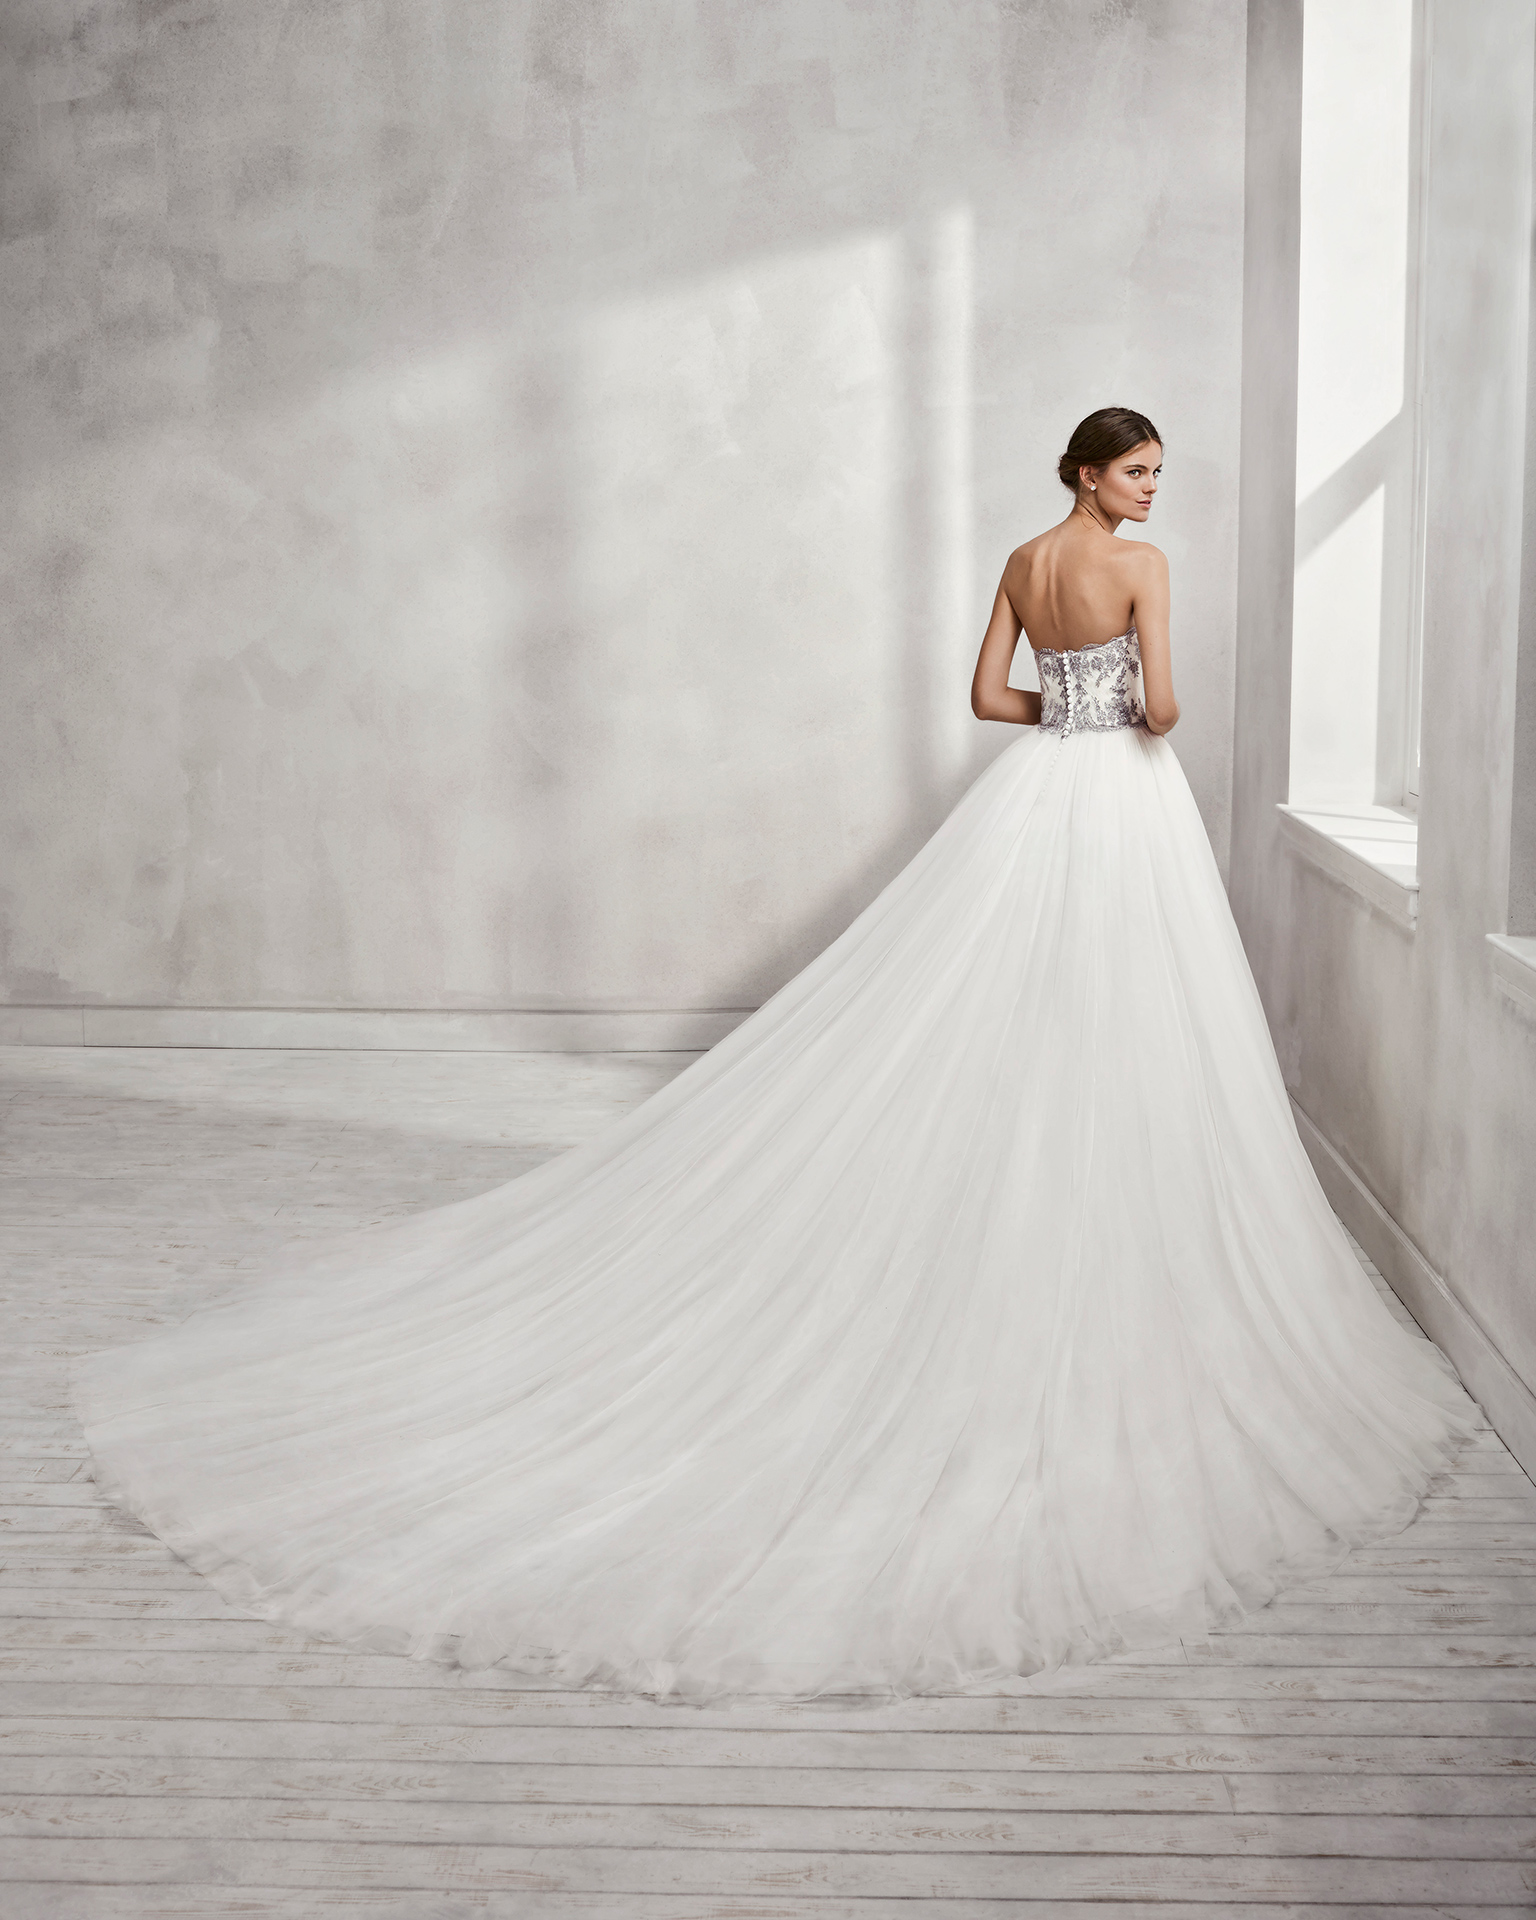 0ece925288 Princess-style lace wedding dress with sweetheart neckline and full tulle  skirt, in natural ...